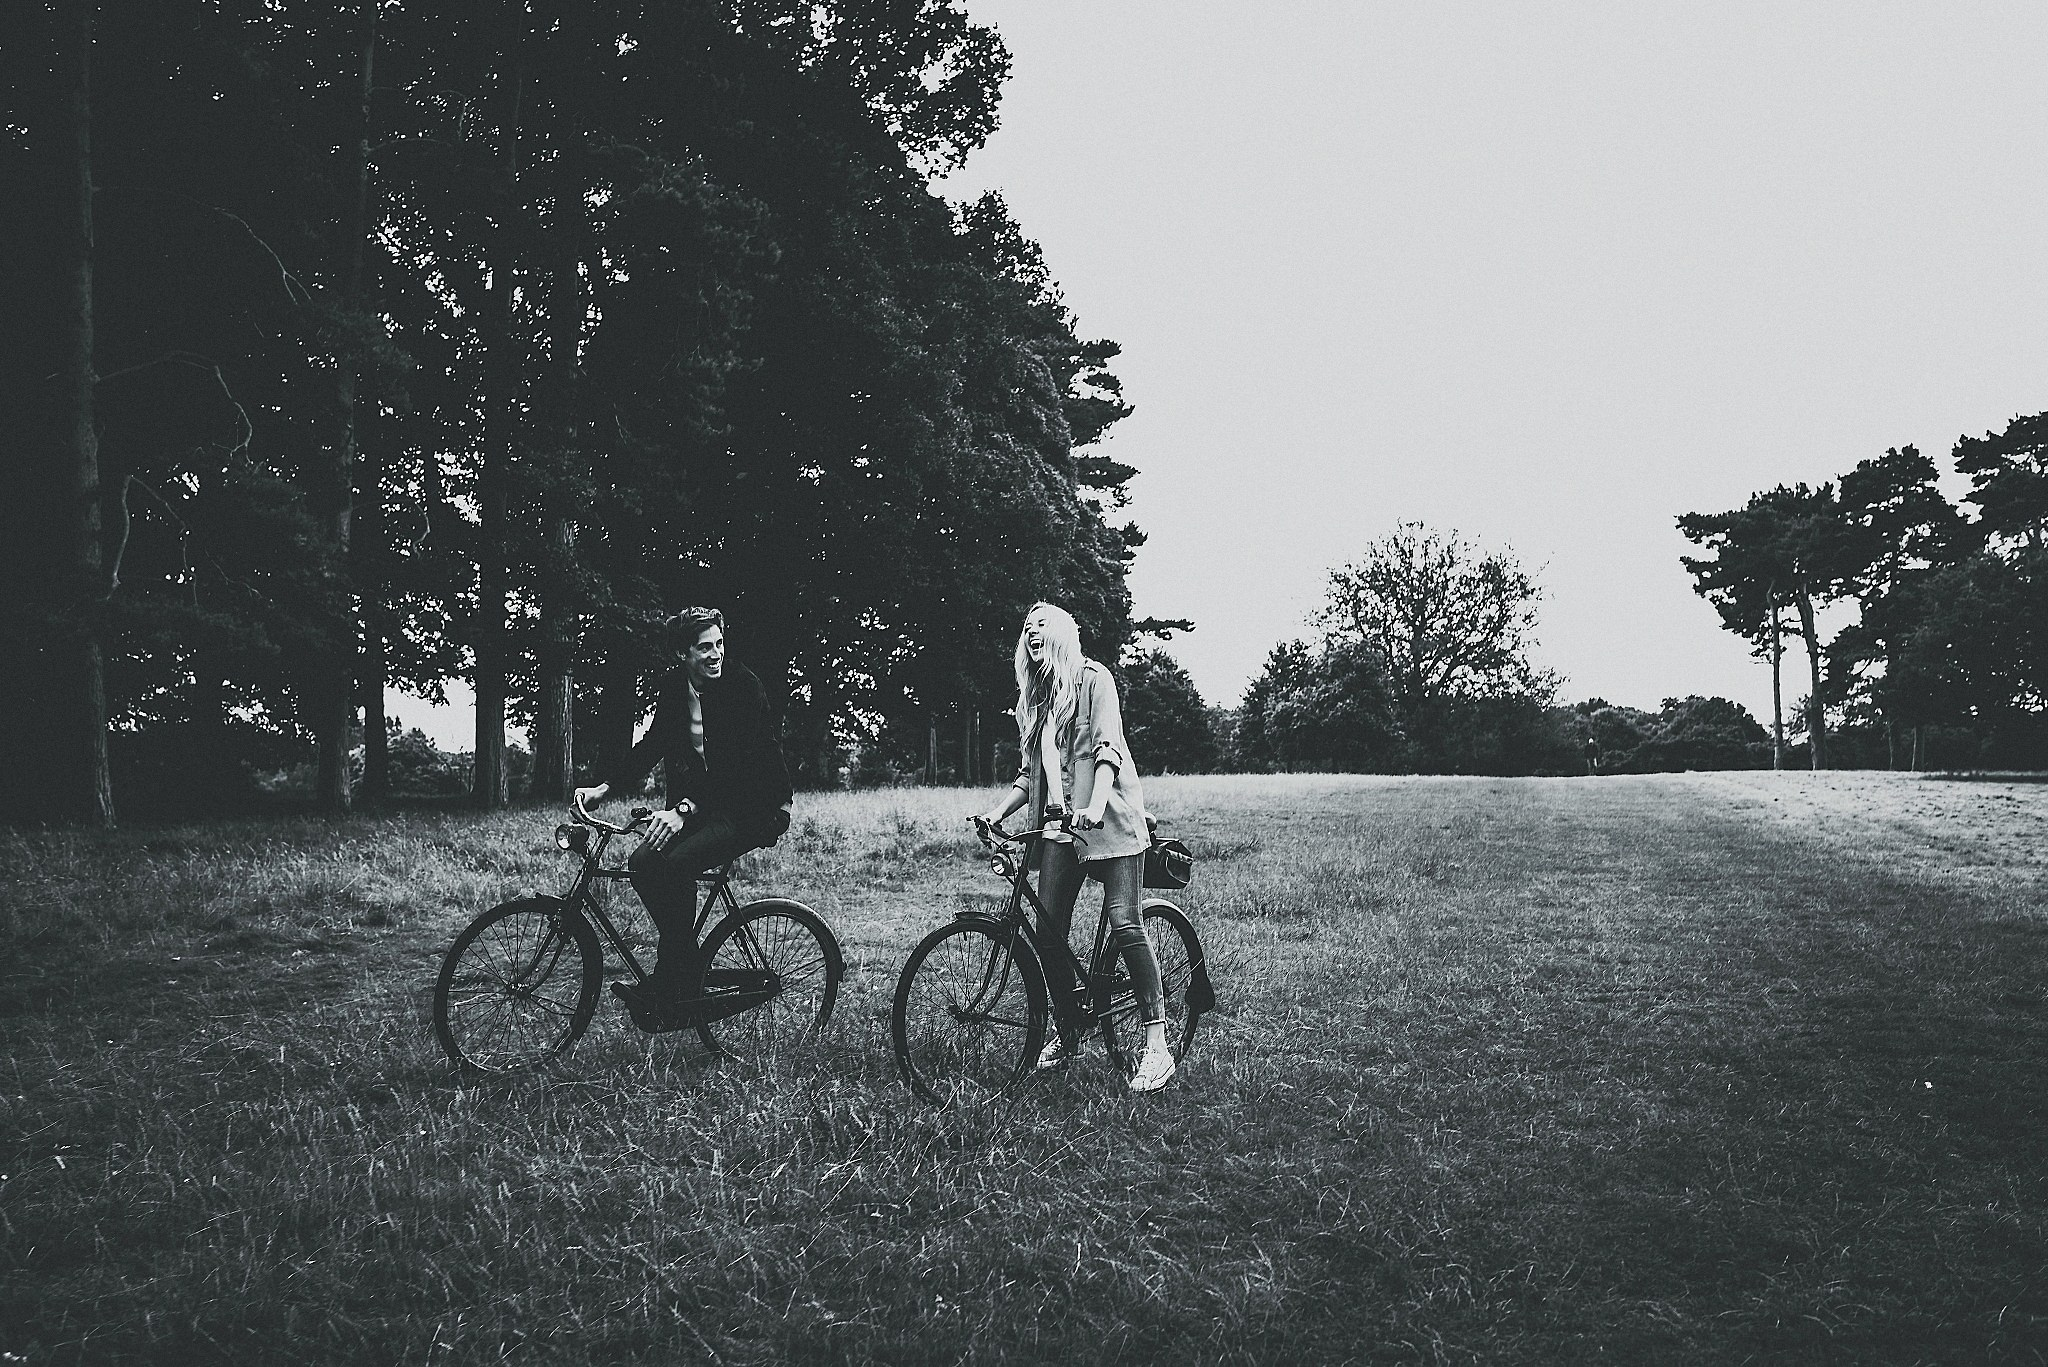 Lauren & Christopher laughing on their vintage bikes in Tatton Park, Cheshire